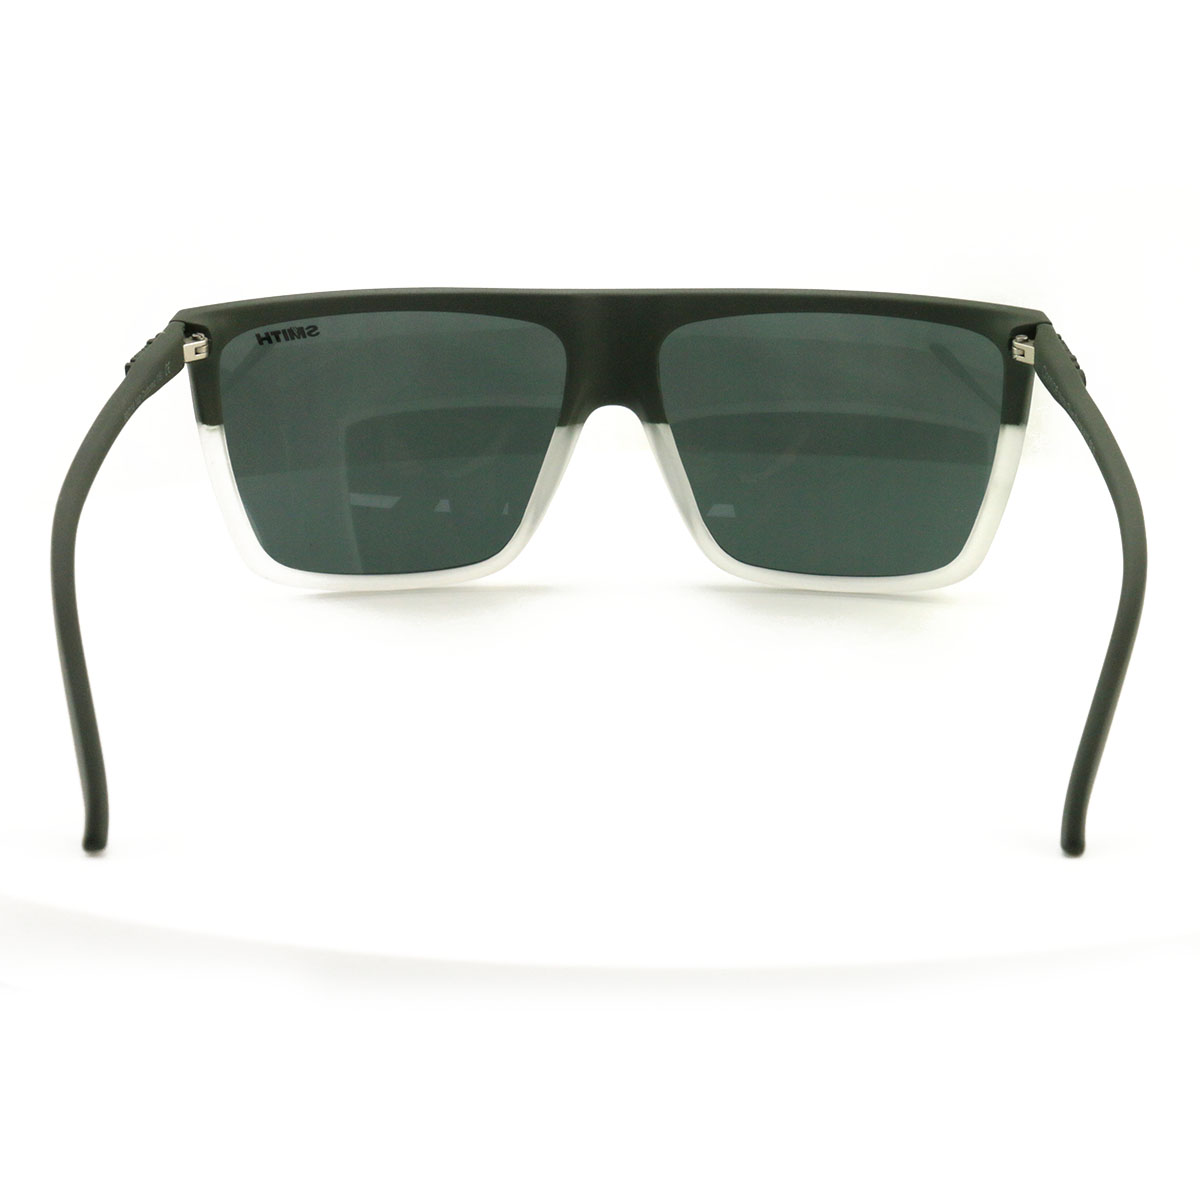 4318a255d14 Smith Cornice Men s Sunglasses WJZ I6 Green Crystal 60 14 140 ...